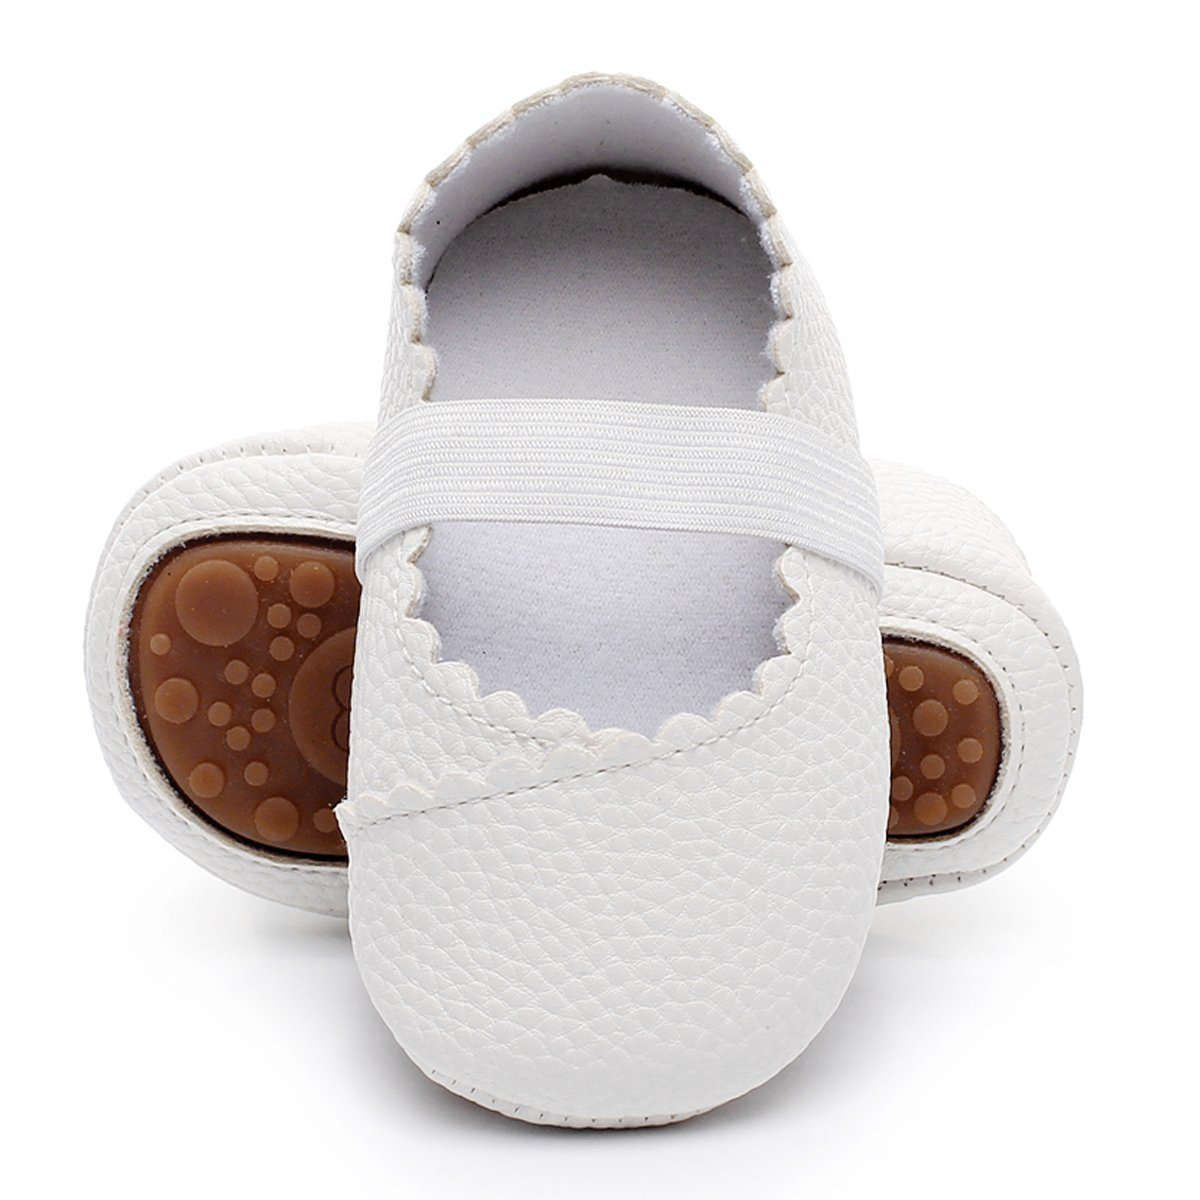 HONGTEYA Girls Dance Ballet Mary Jane Flats Shoes Print Rubber Sole Bottom Baby Moccasins Sandals(0-6M/4.33inch, White)